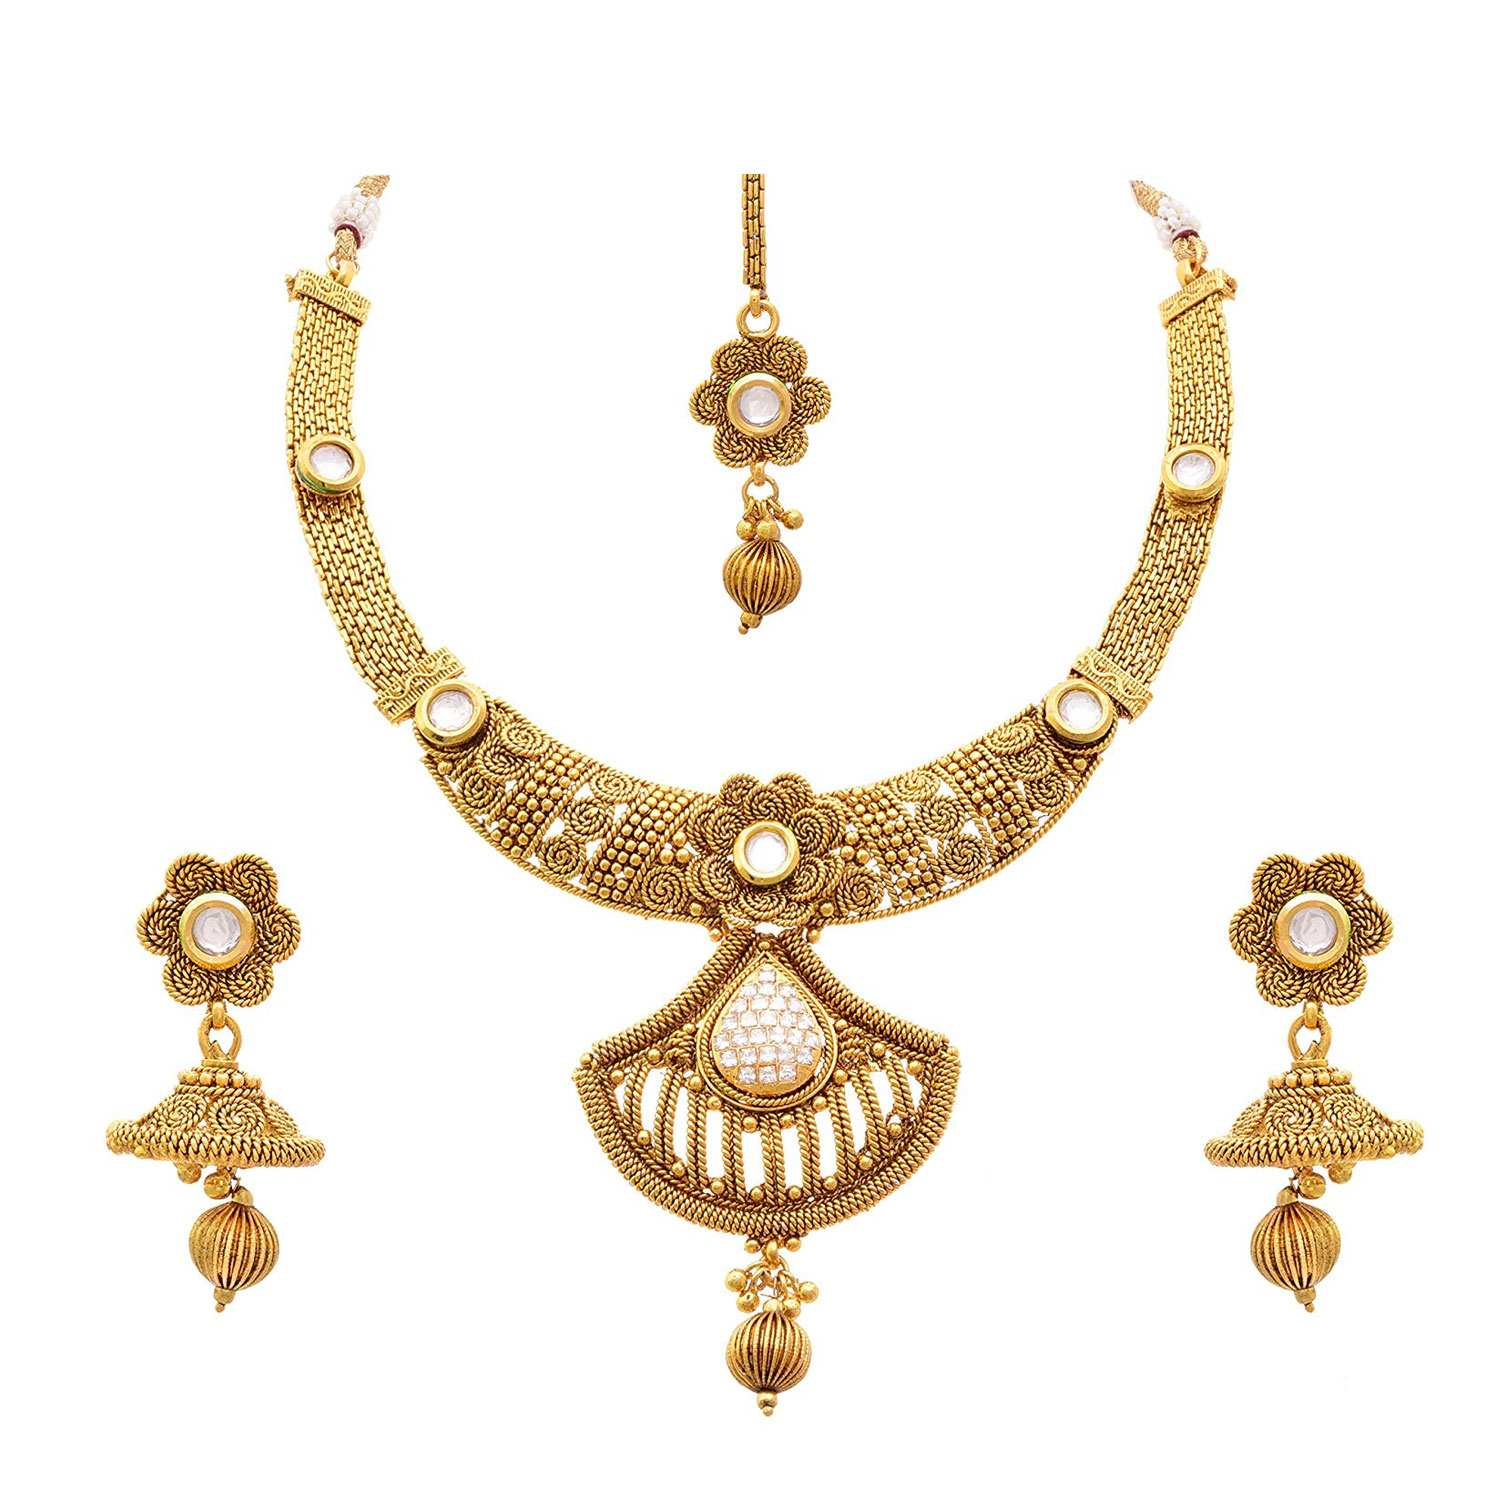 JFL - Traditional Ethnic One Gram Gold Plated Spiral Diamond Designer Necklace Set with Earring for Women and Girls